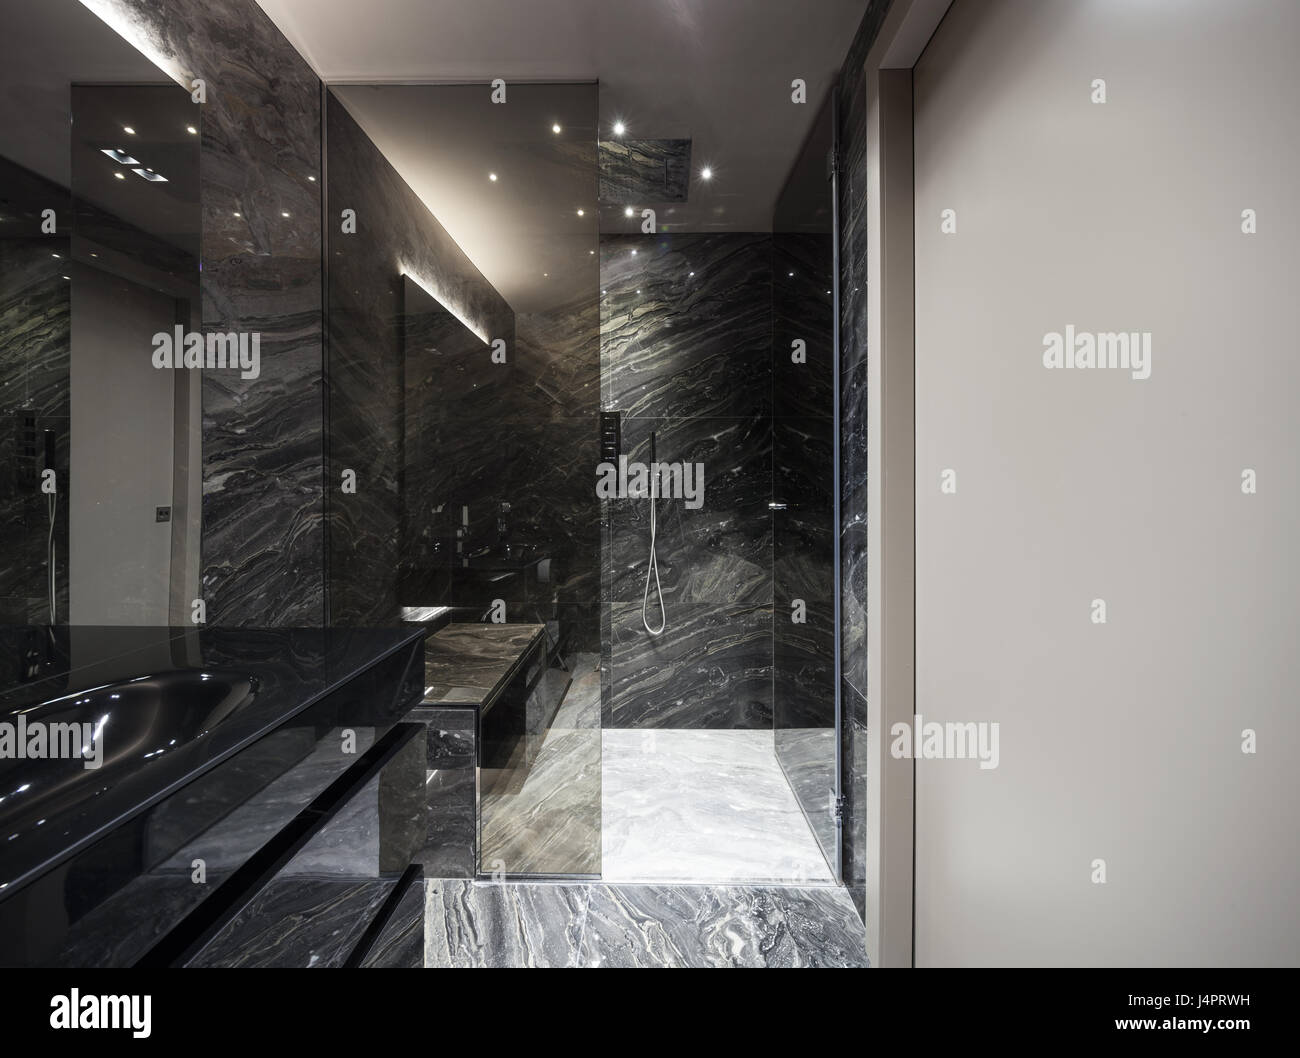 Nero D Africa Marmo bathroo stock photos & bathroo stock images - alamy